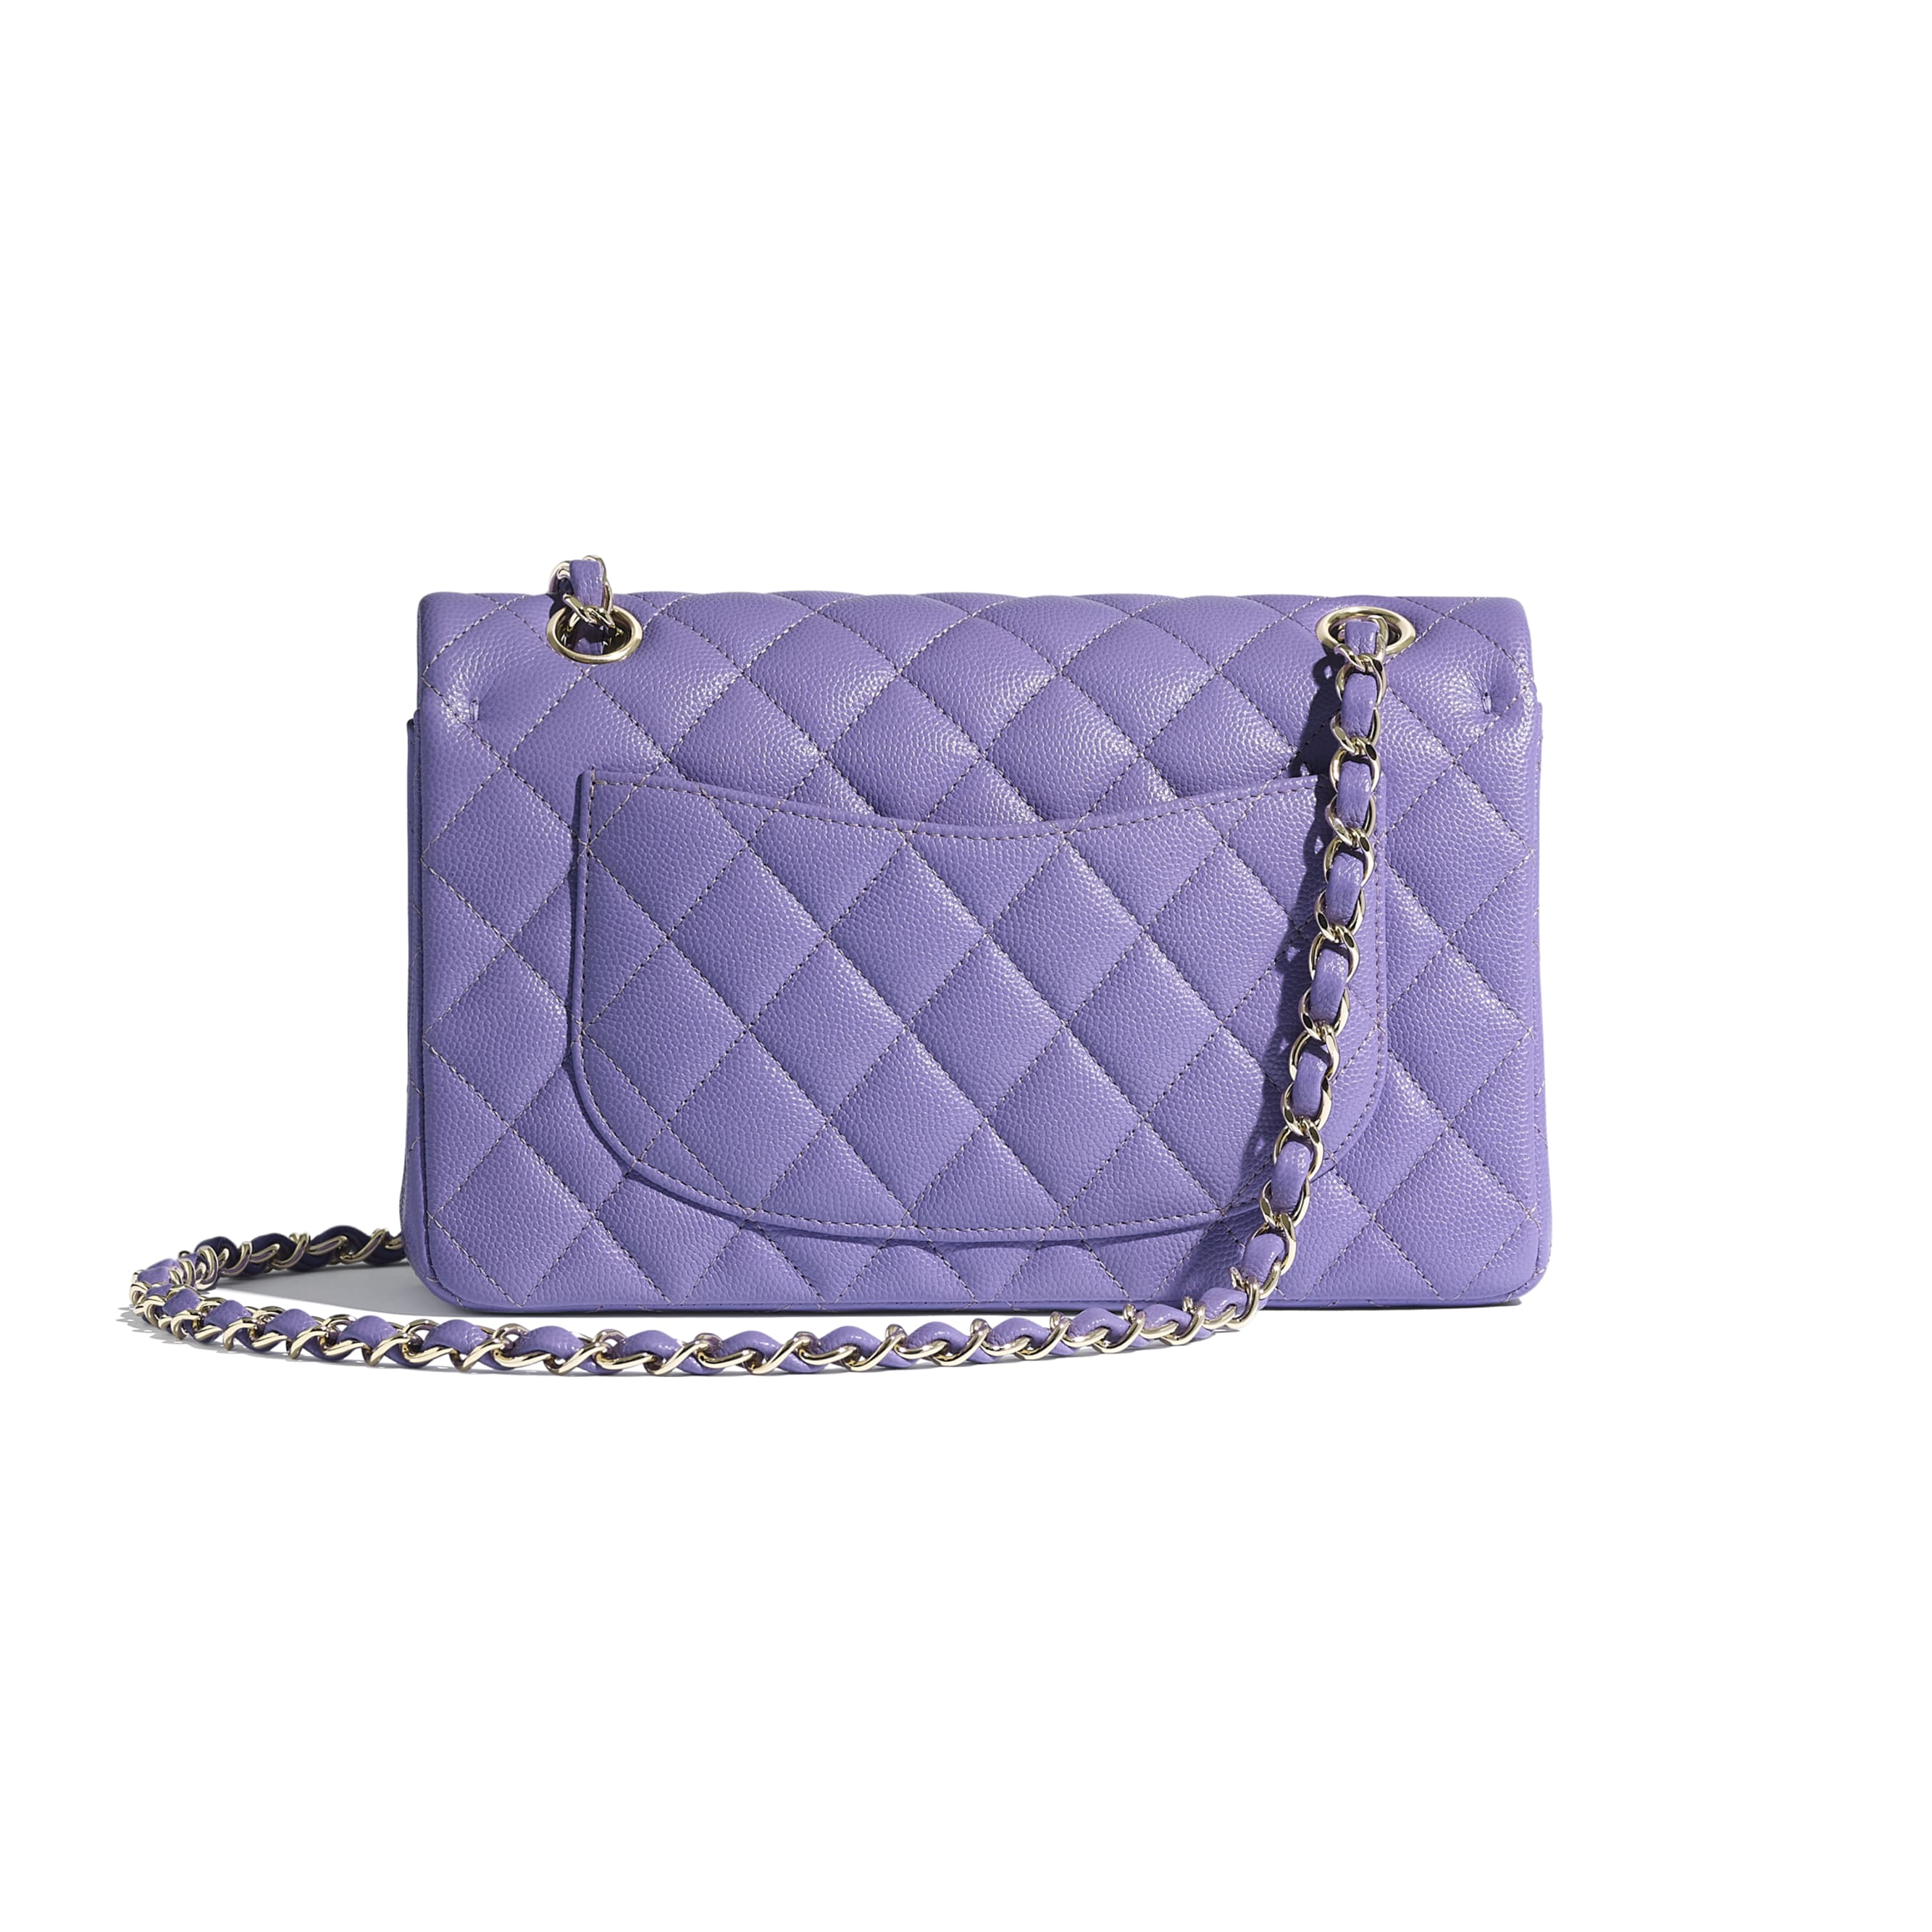 Classic Handbag - Purple - Grained Calfskin & Gold-Tone Metal - Alternative view - see standard sized version